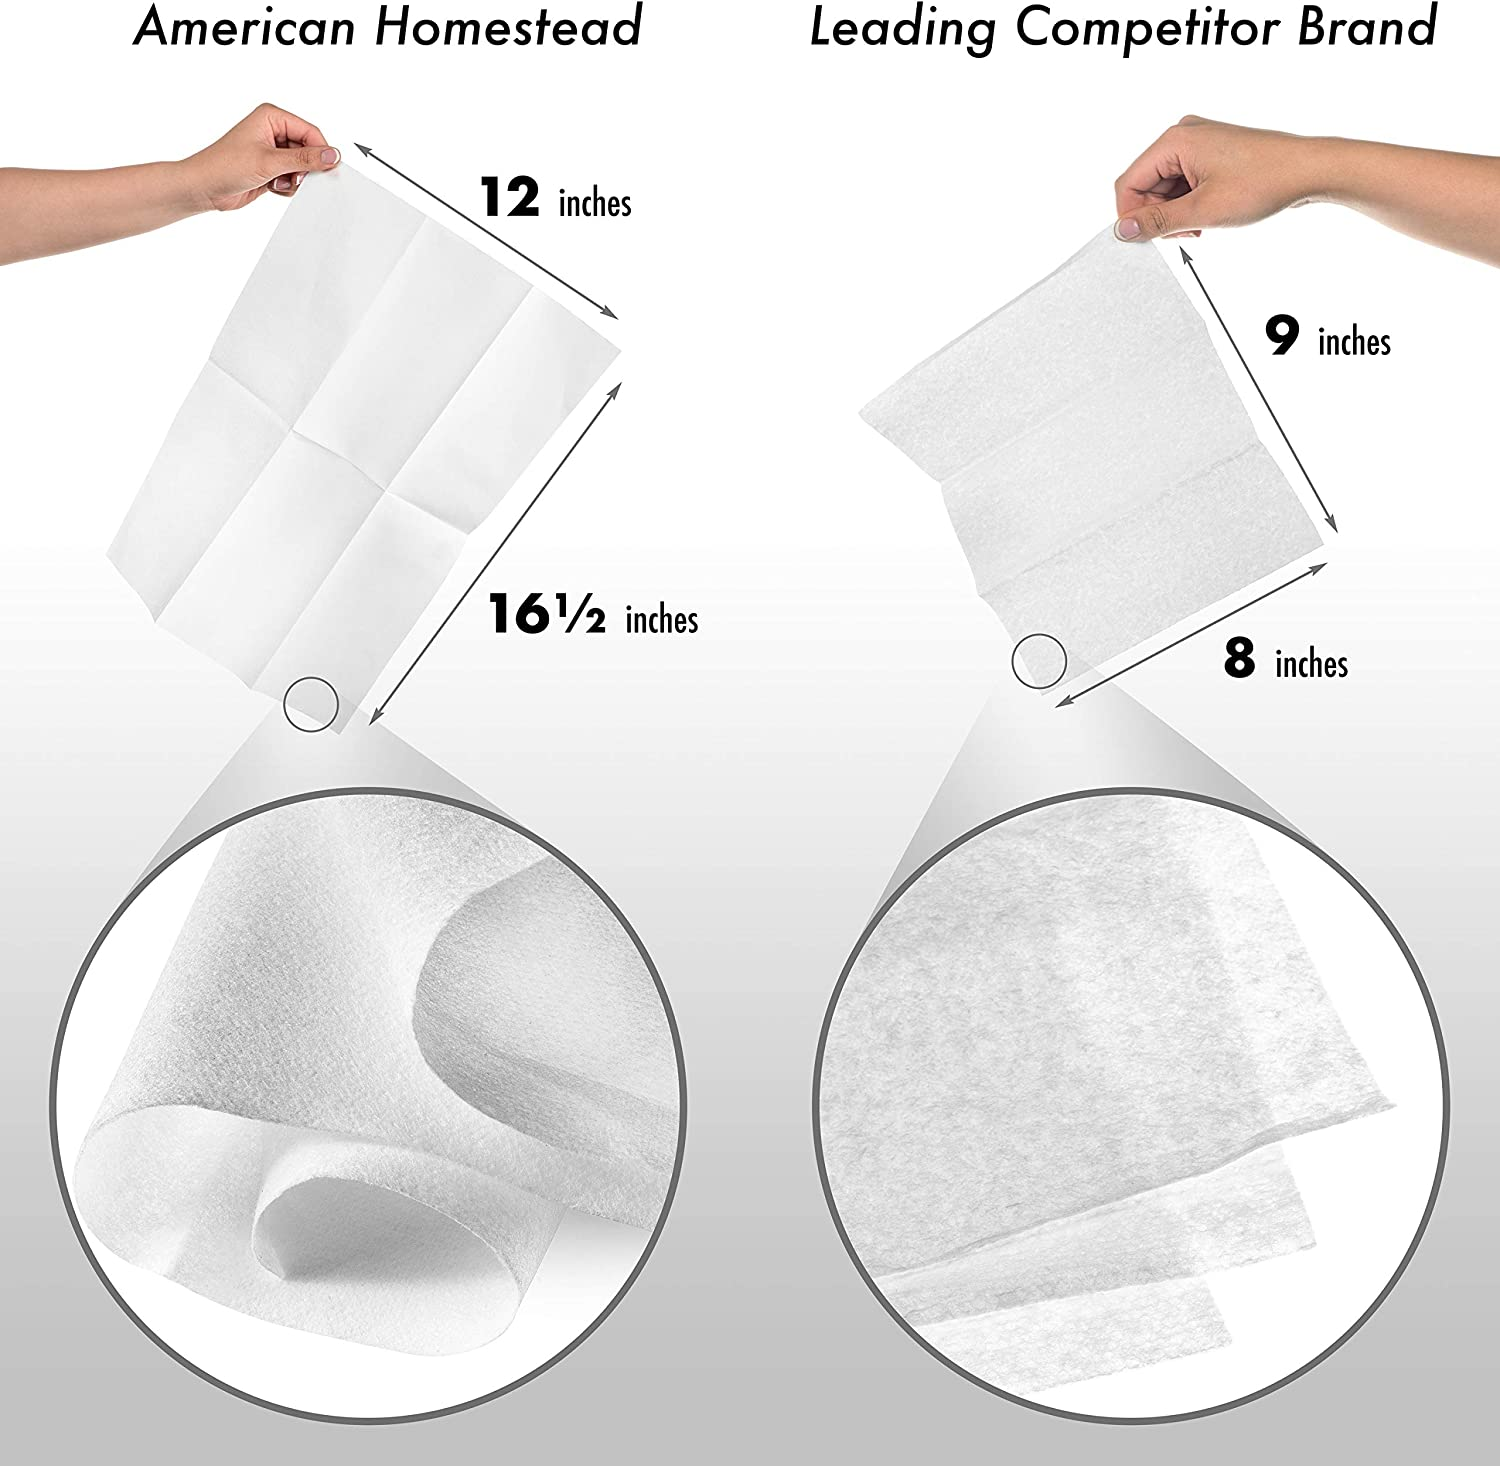 American Homestead Guest Disposable Hand Towels